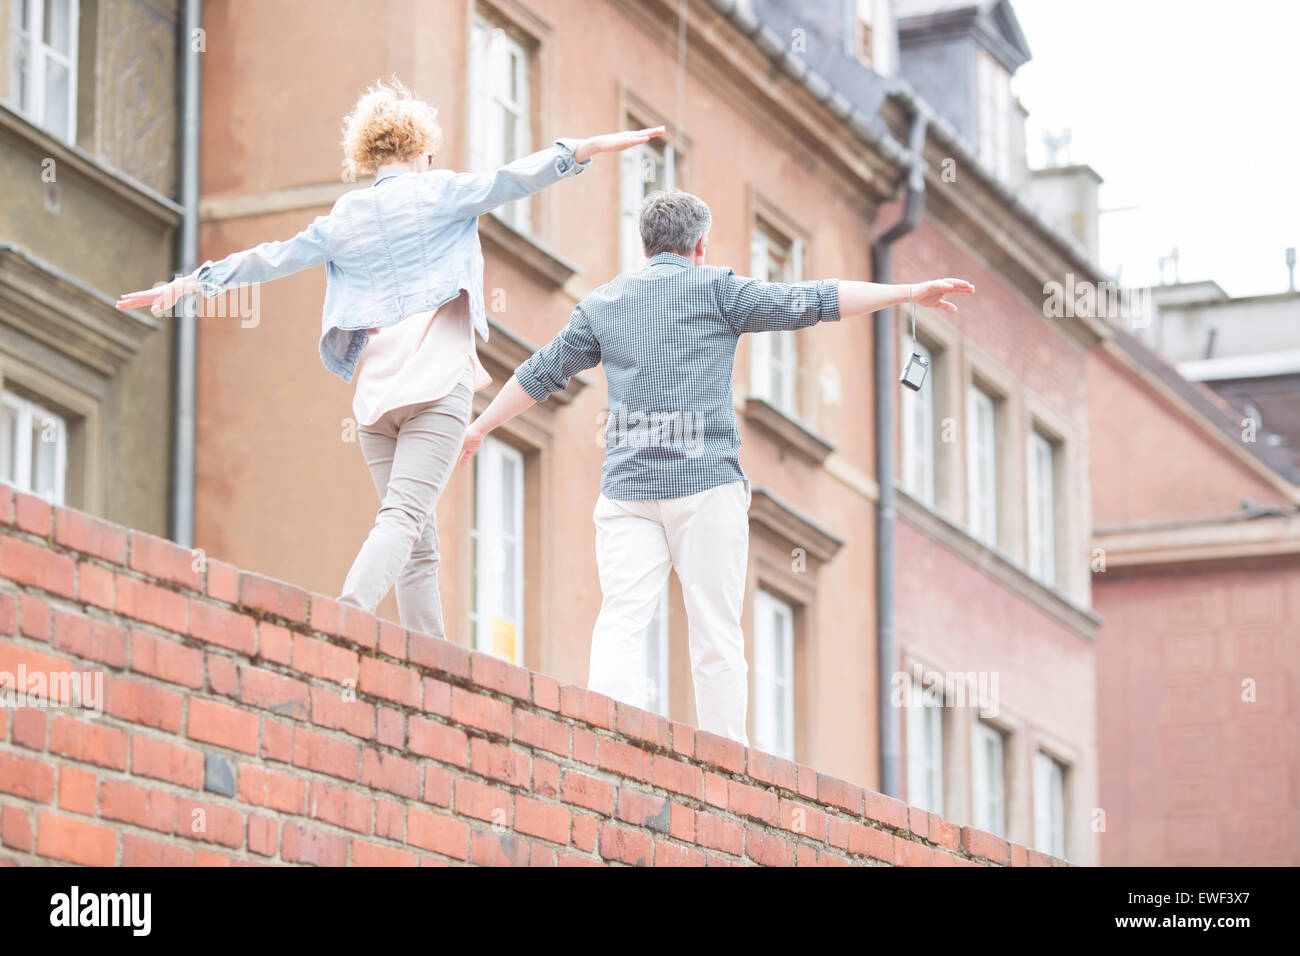 Rear view of middle-aged couple with arms outstretched walking on brick wall - Stock Image